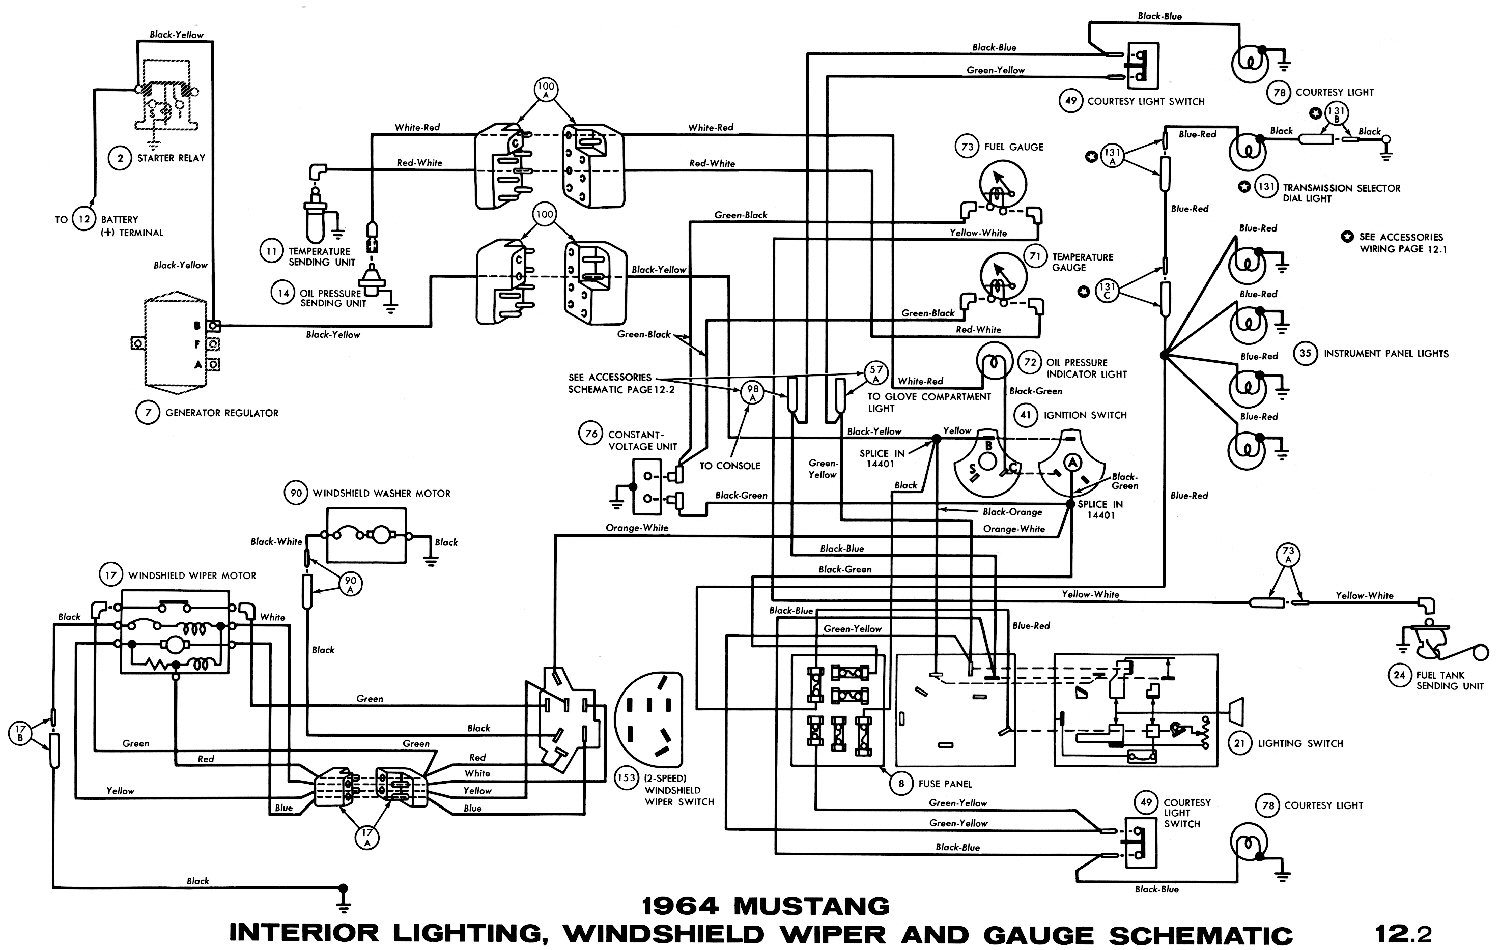 1970 Corvette Backup Light Wiring Diagram Quick Start Guide Of 1971 Novabackup Diagrams 1968 Mustang Data Rh 13 8 Mercedes Aktion Tesmer De Starter Engine